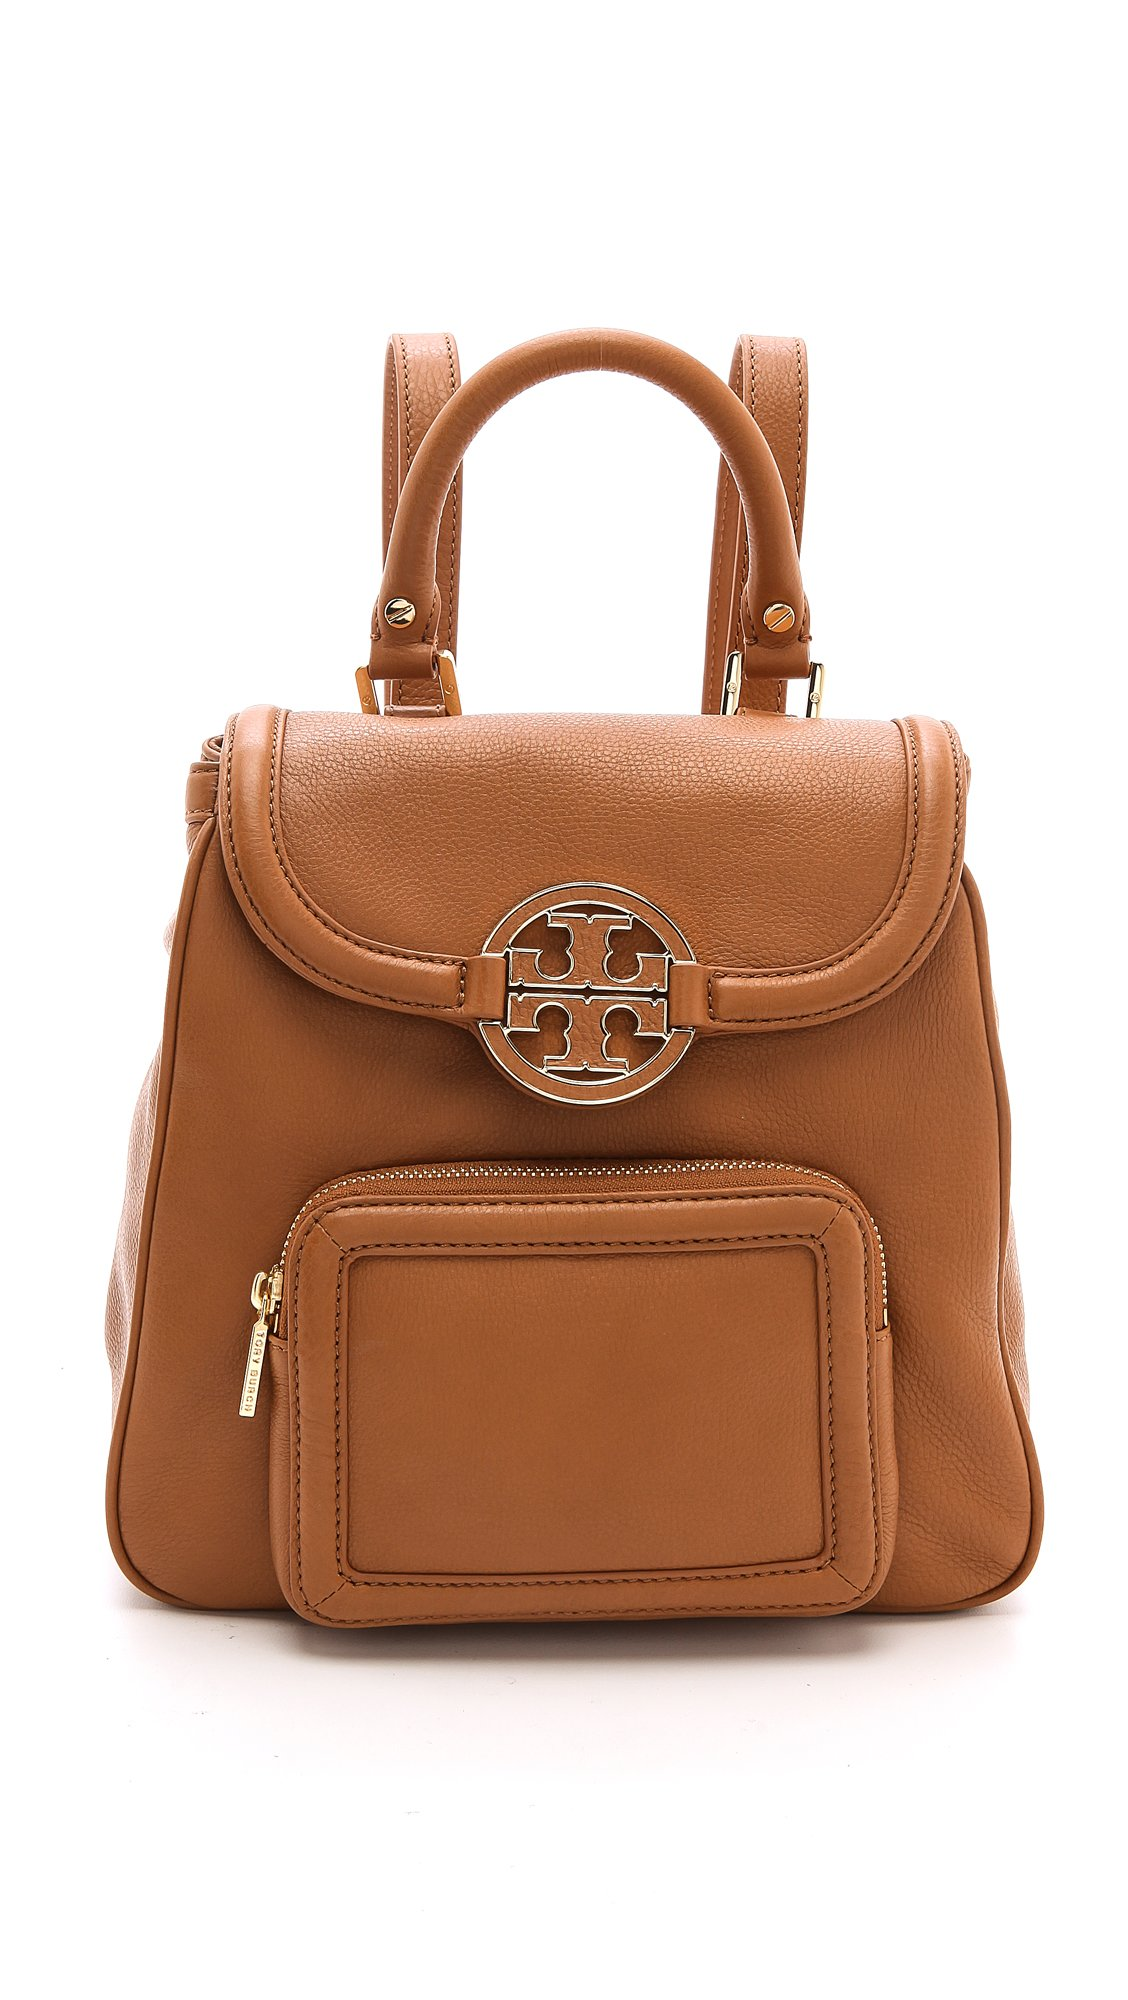 54cf628136a Gallery. Previously sold at  Shopbop · Women s Mini Backpack Women s Tory  Burch ...